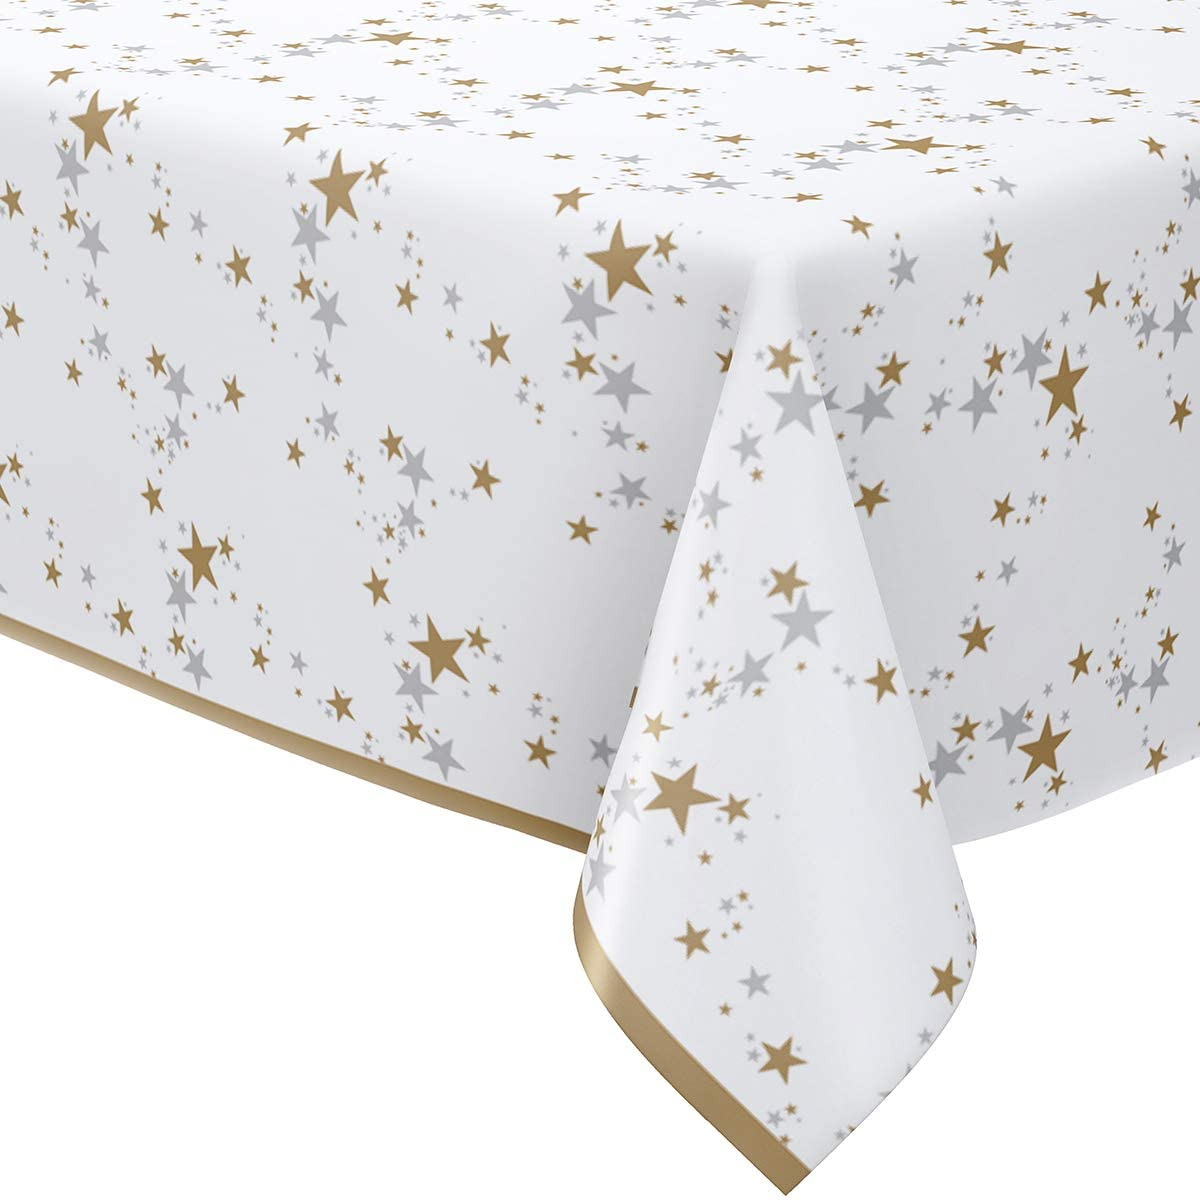 HOMIX 4 Pack White Paper Rectangular Tablecloth for Parties, Disposable Gold and Silver Star Table Covers for Birthdays Wedding Baby Shower Christmas 54